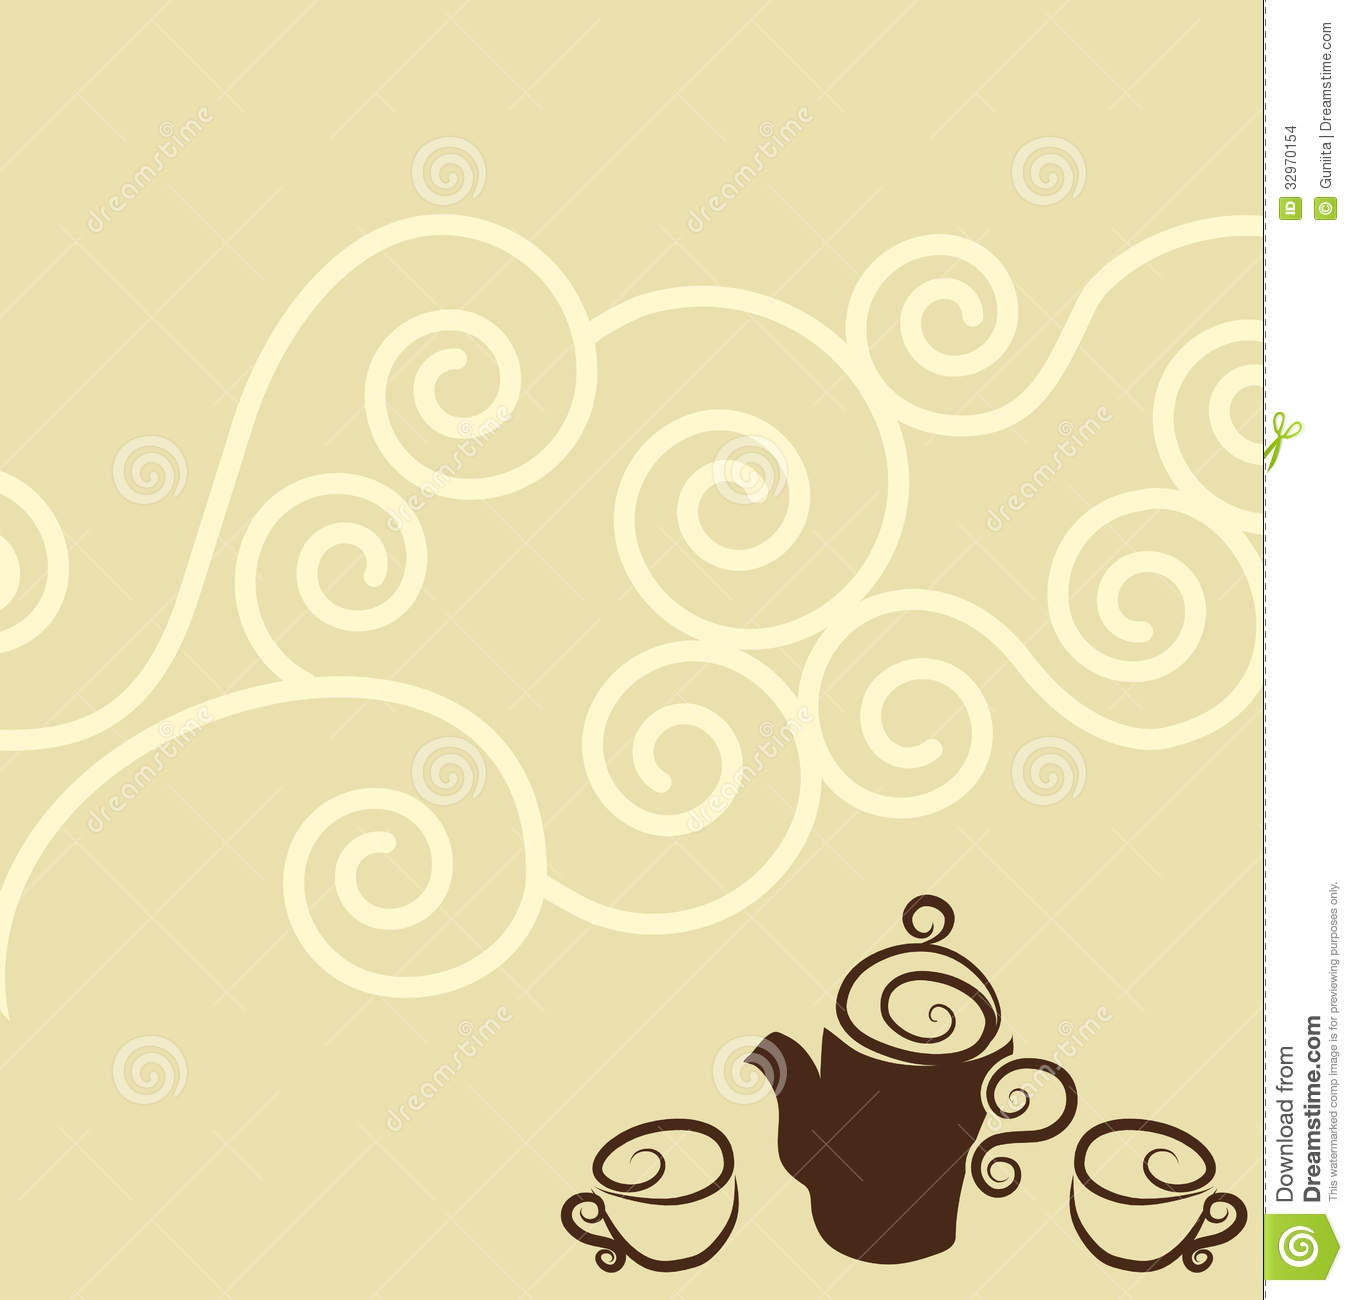 Coffee Wallpaper Design Stock Images